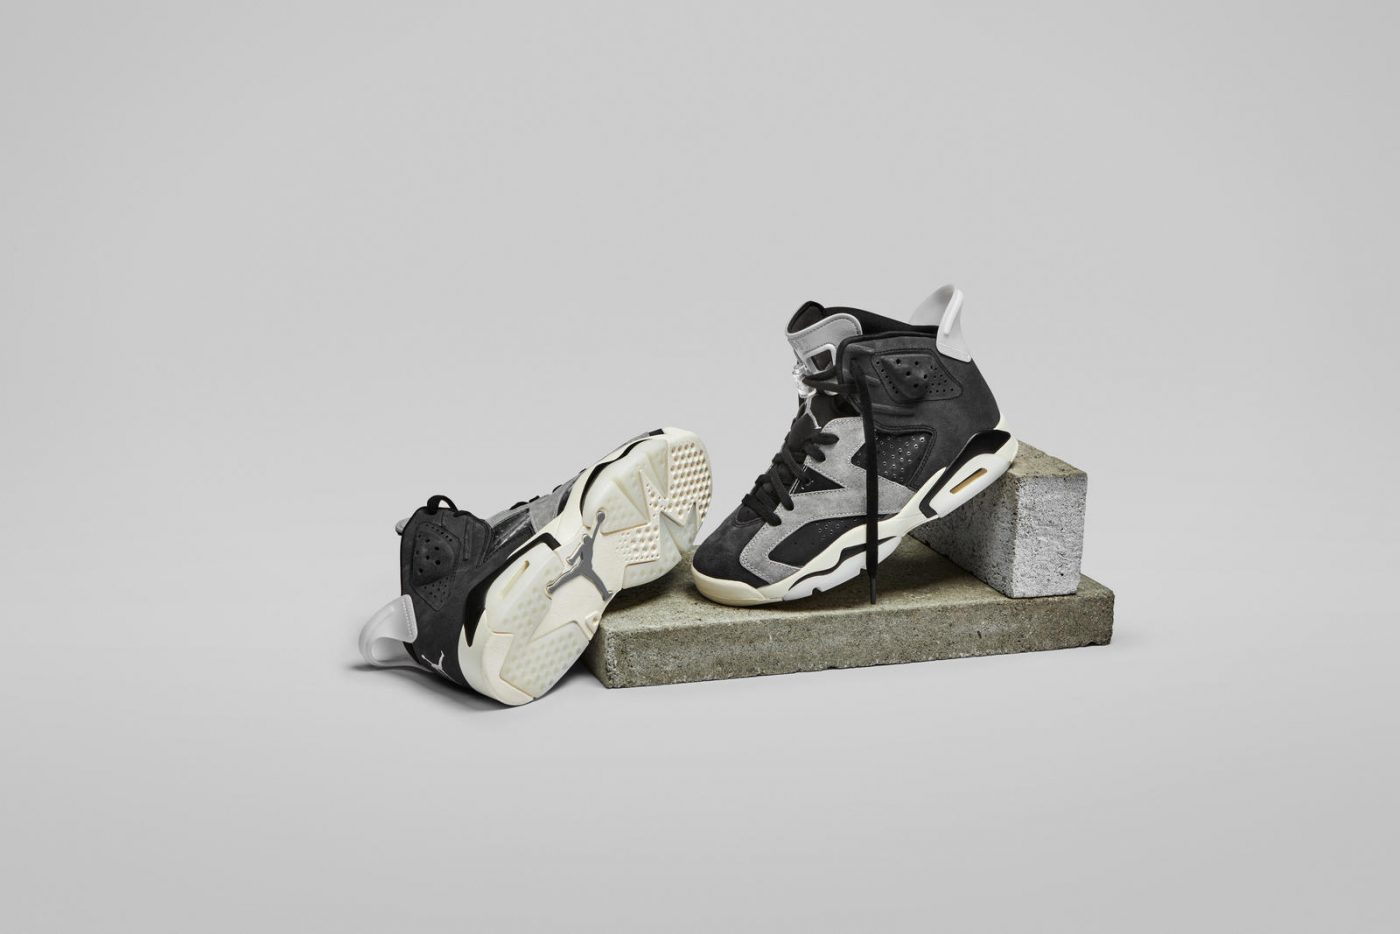 Air Jordan 6 WMNS black and grey